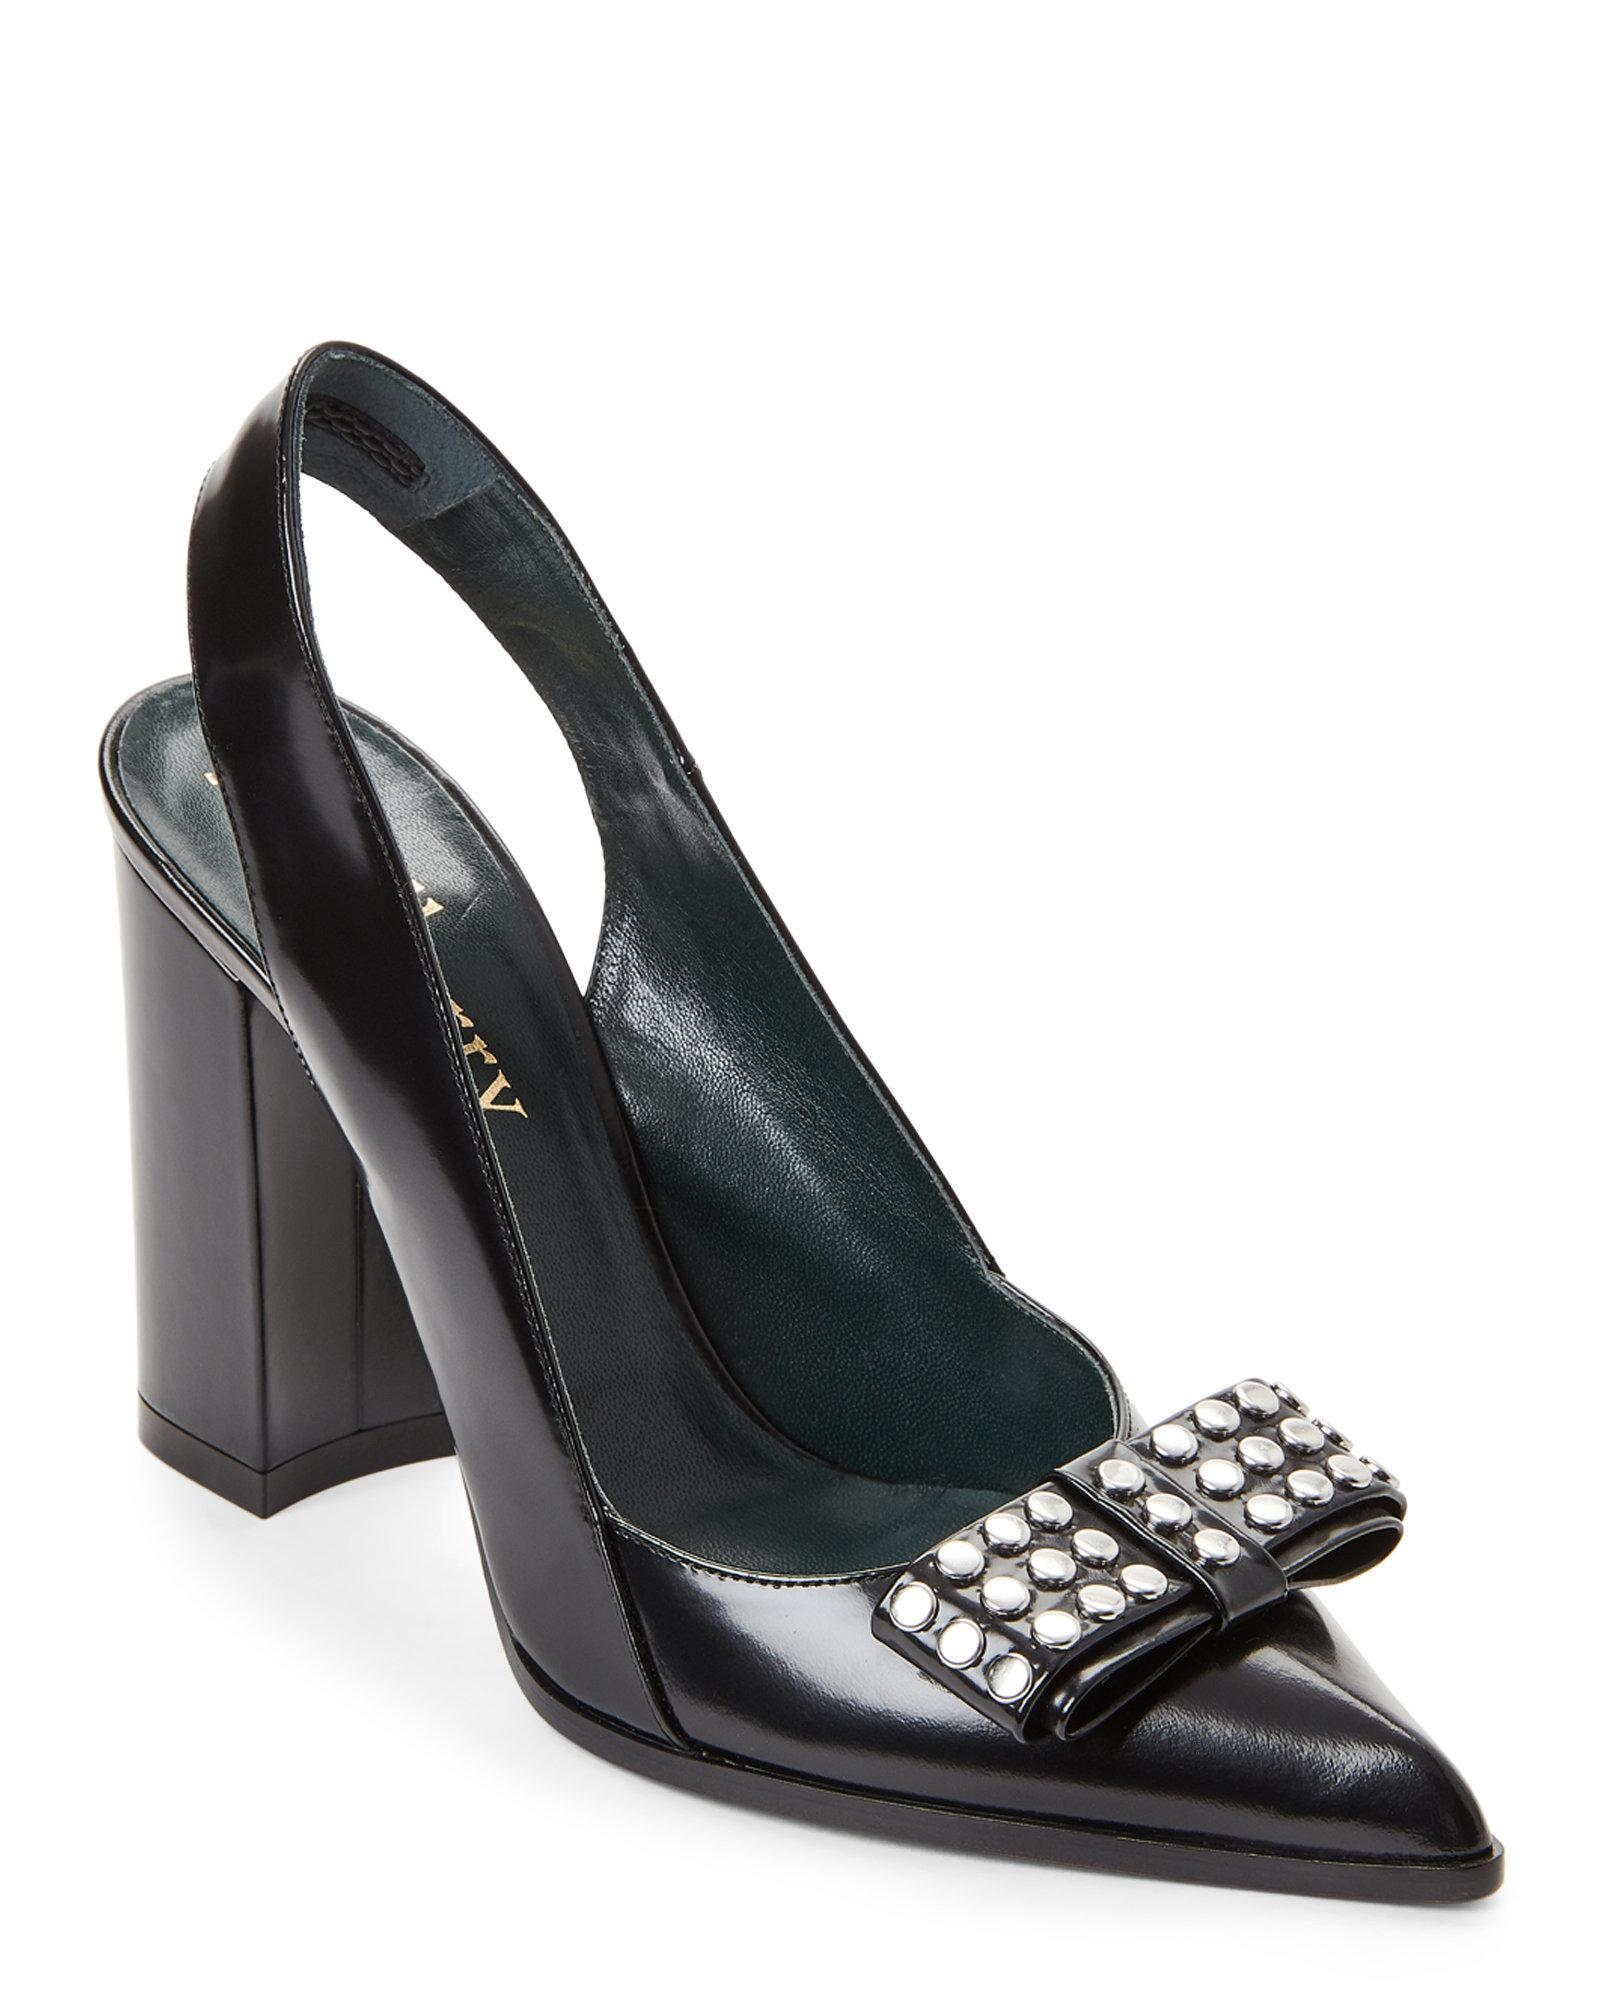 8bd83558d4d1 Lyst - Mulberry Black Studded Bow Leather Slingback Pumps in Black